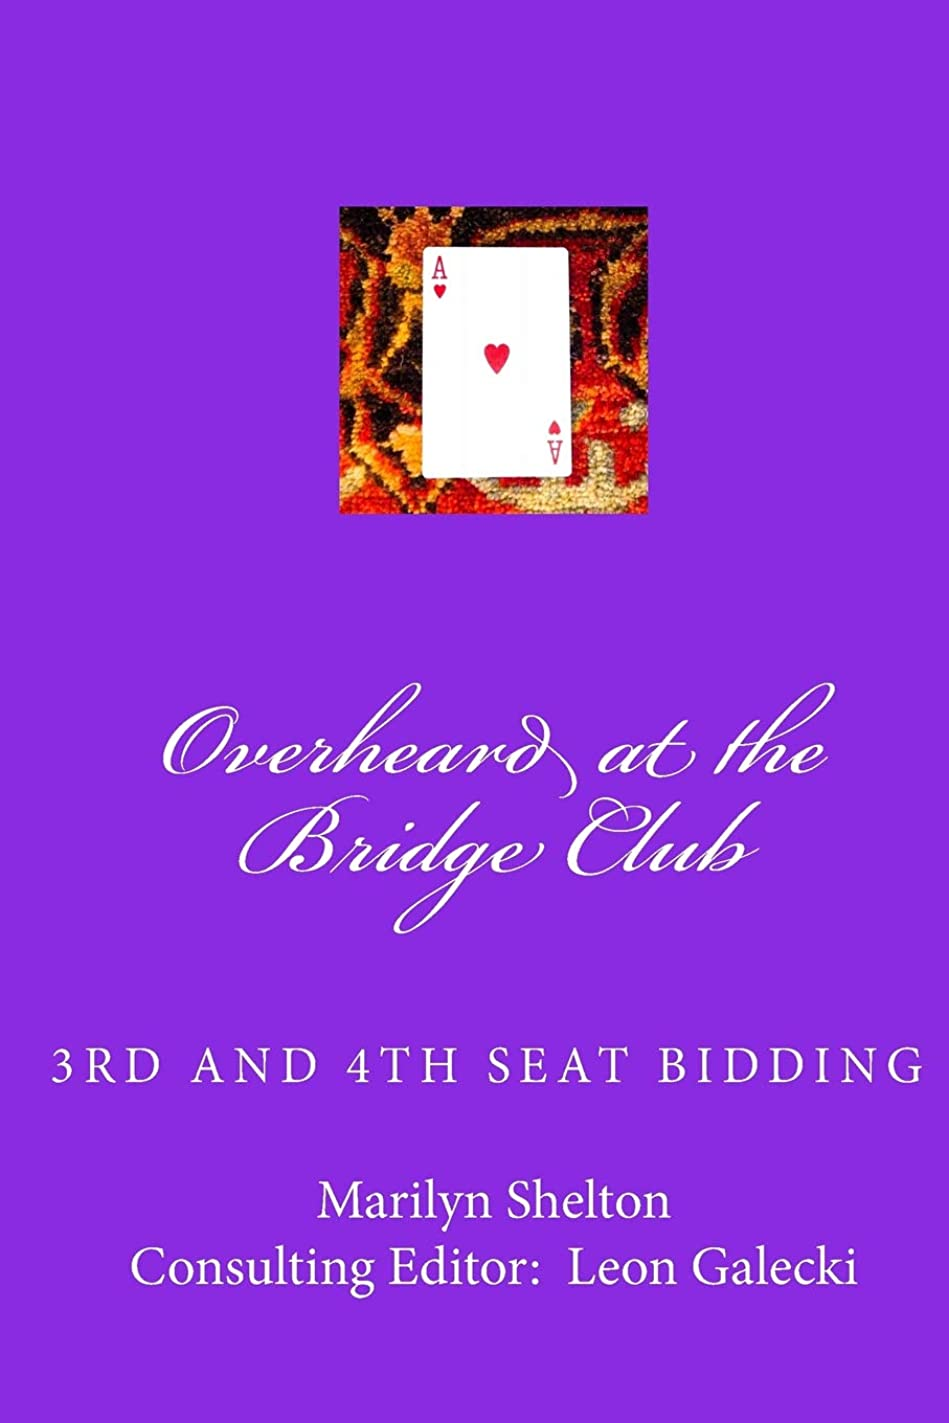 良心リハーサルうめきOverheard at the Bridge Club: Third and fourth seat bidding;   psychs, light openers, reverse drury, and strategy for passed hand bidding